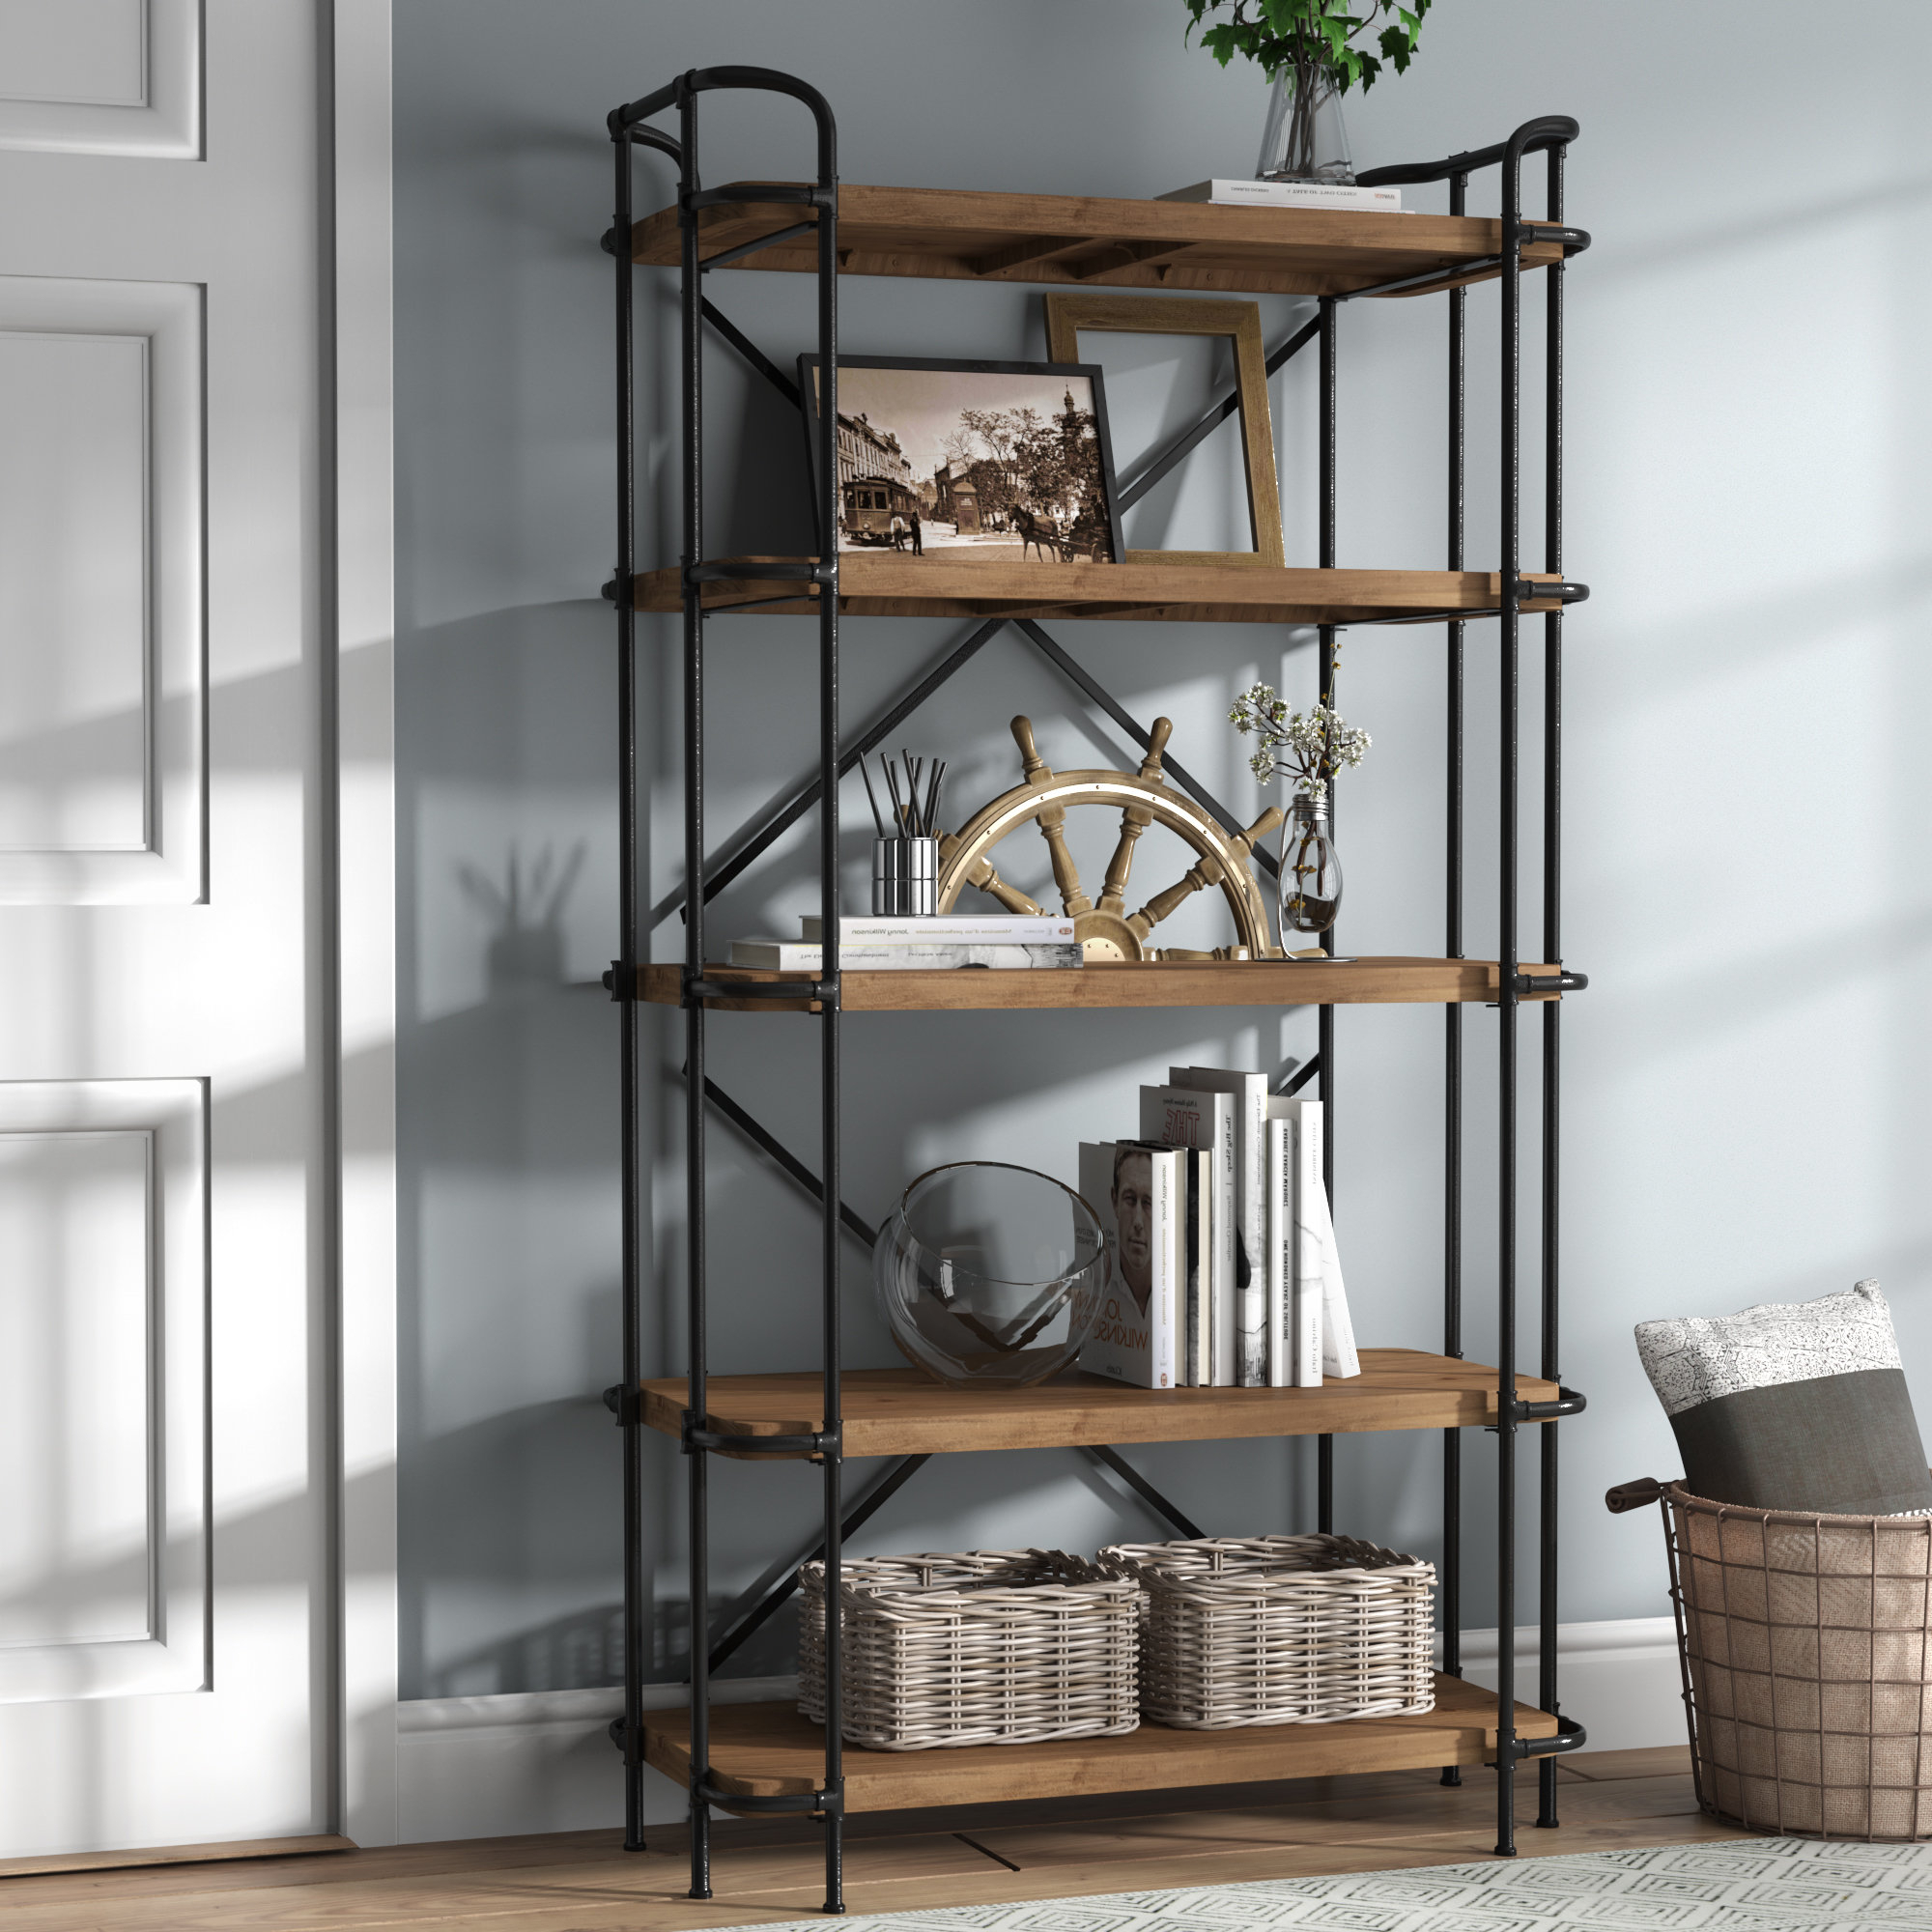 Favorite Laurel Foundry Modern Farmhouse Ebba Etagere Bookcase Inside Ebba Etagere Bookcases (View 2 of 20)